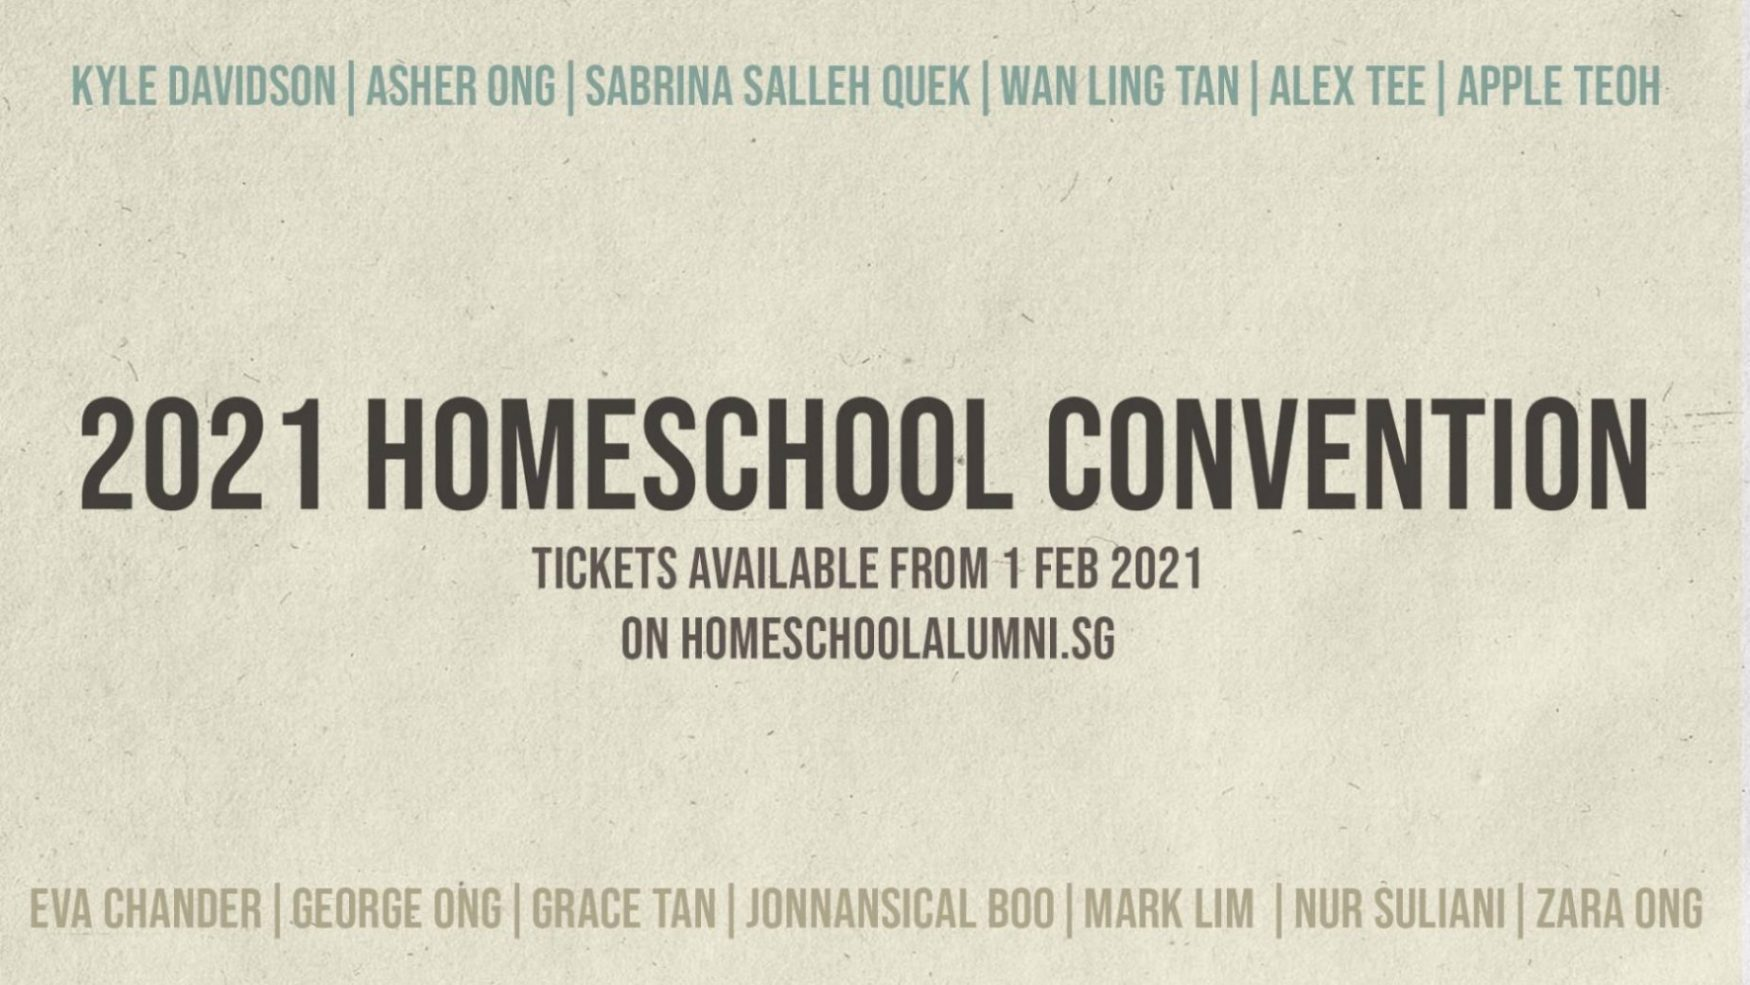 Homeschool Convention 2021